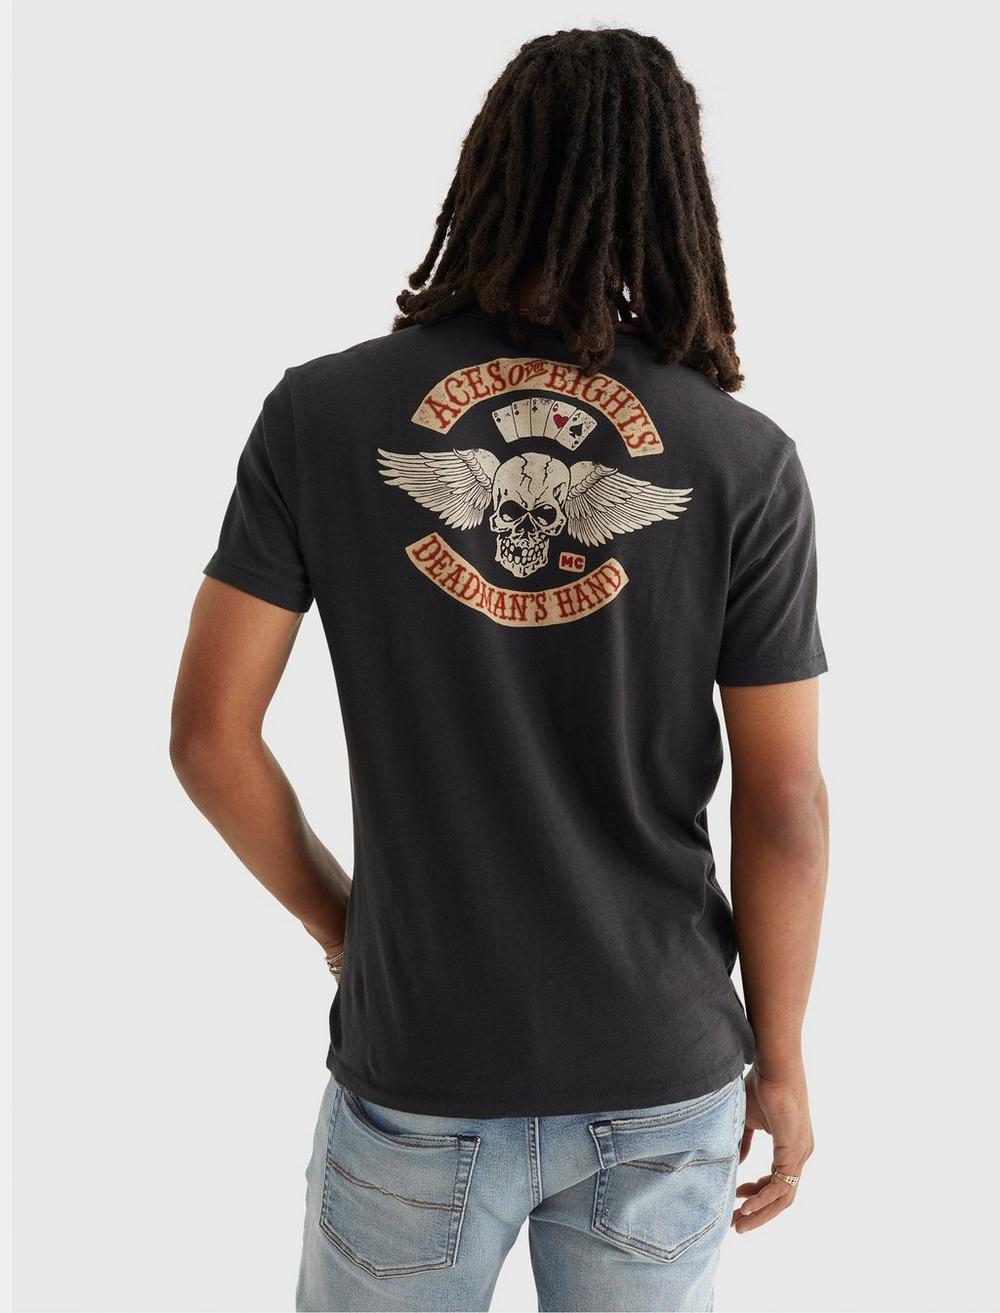 ACES OVER EIGHTS TEE, image 4